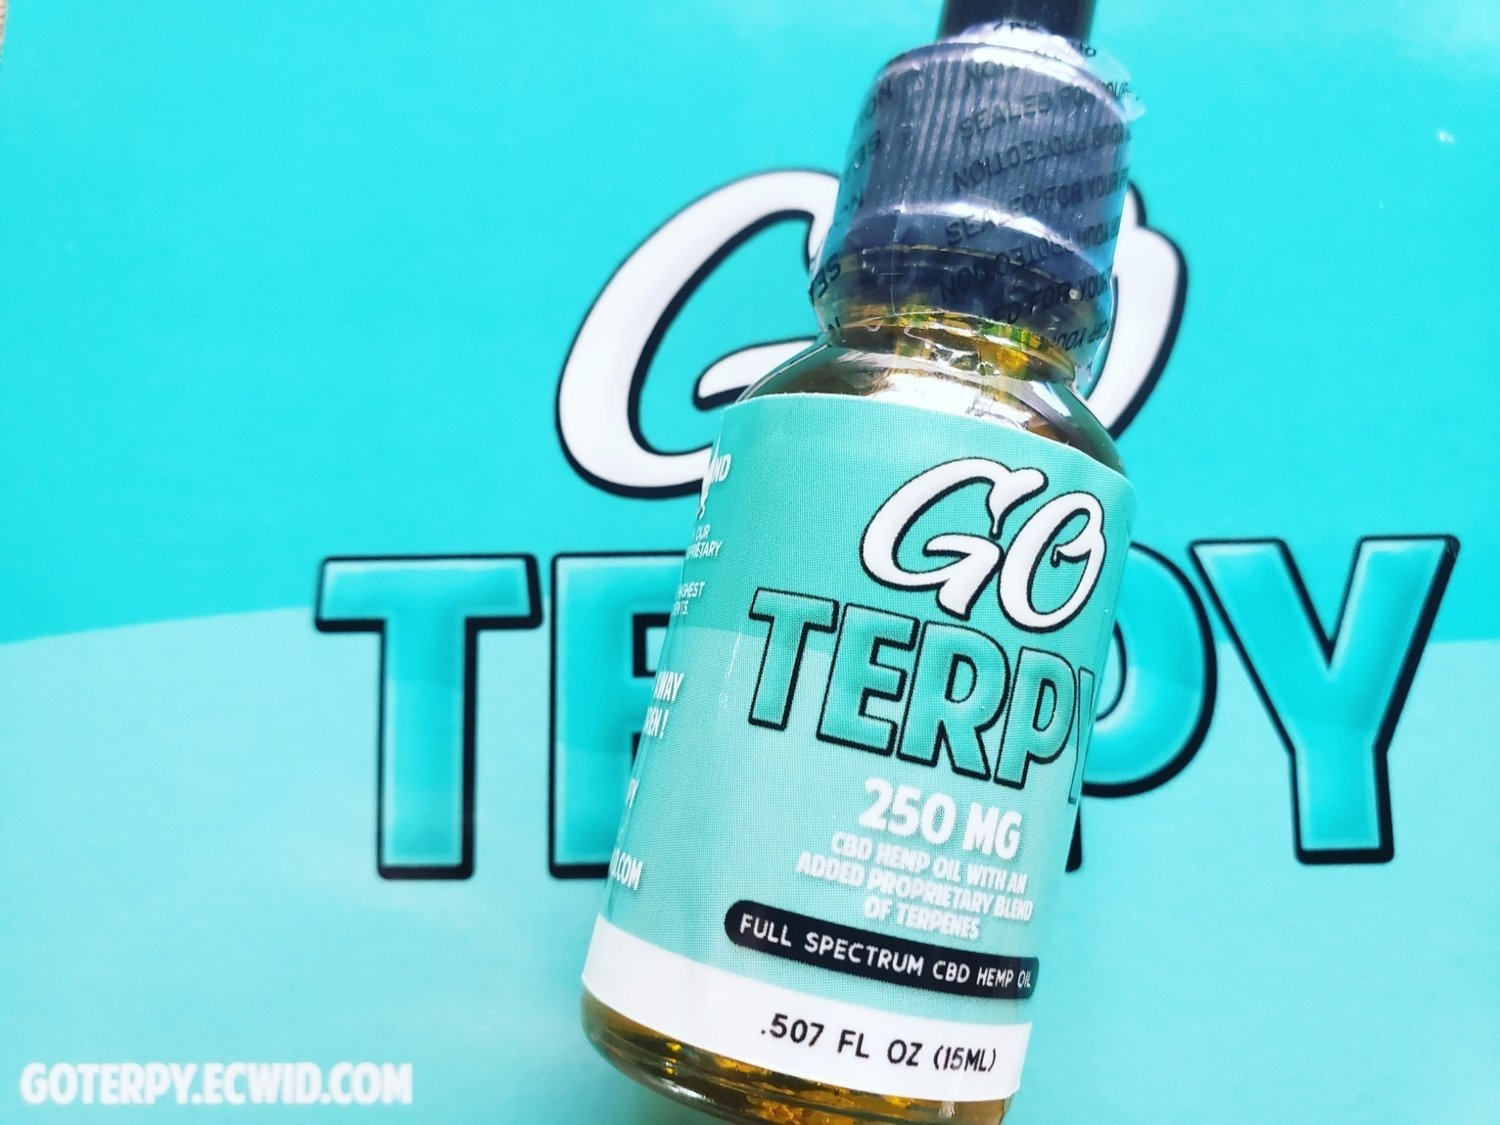 Go Terpy is Full Spectrum CBD Tincture from Hemp with a proprietary blend of organic terpenes for additional medicinal effects. There are 250 mgs of whole plant full spectrum CBD in each 15ml 1/2 oz bottle.